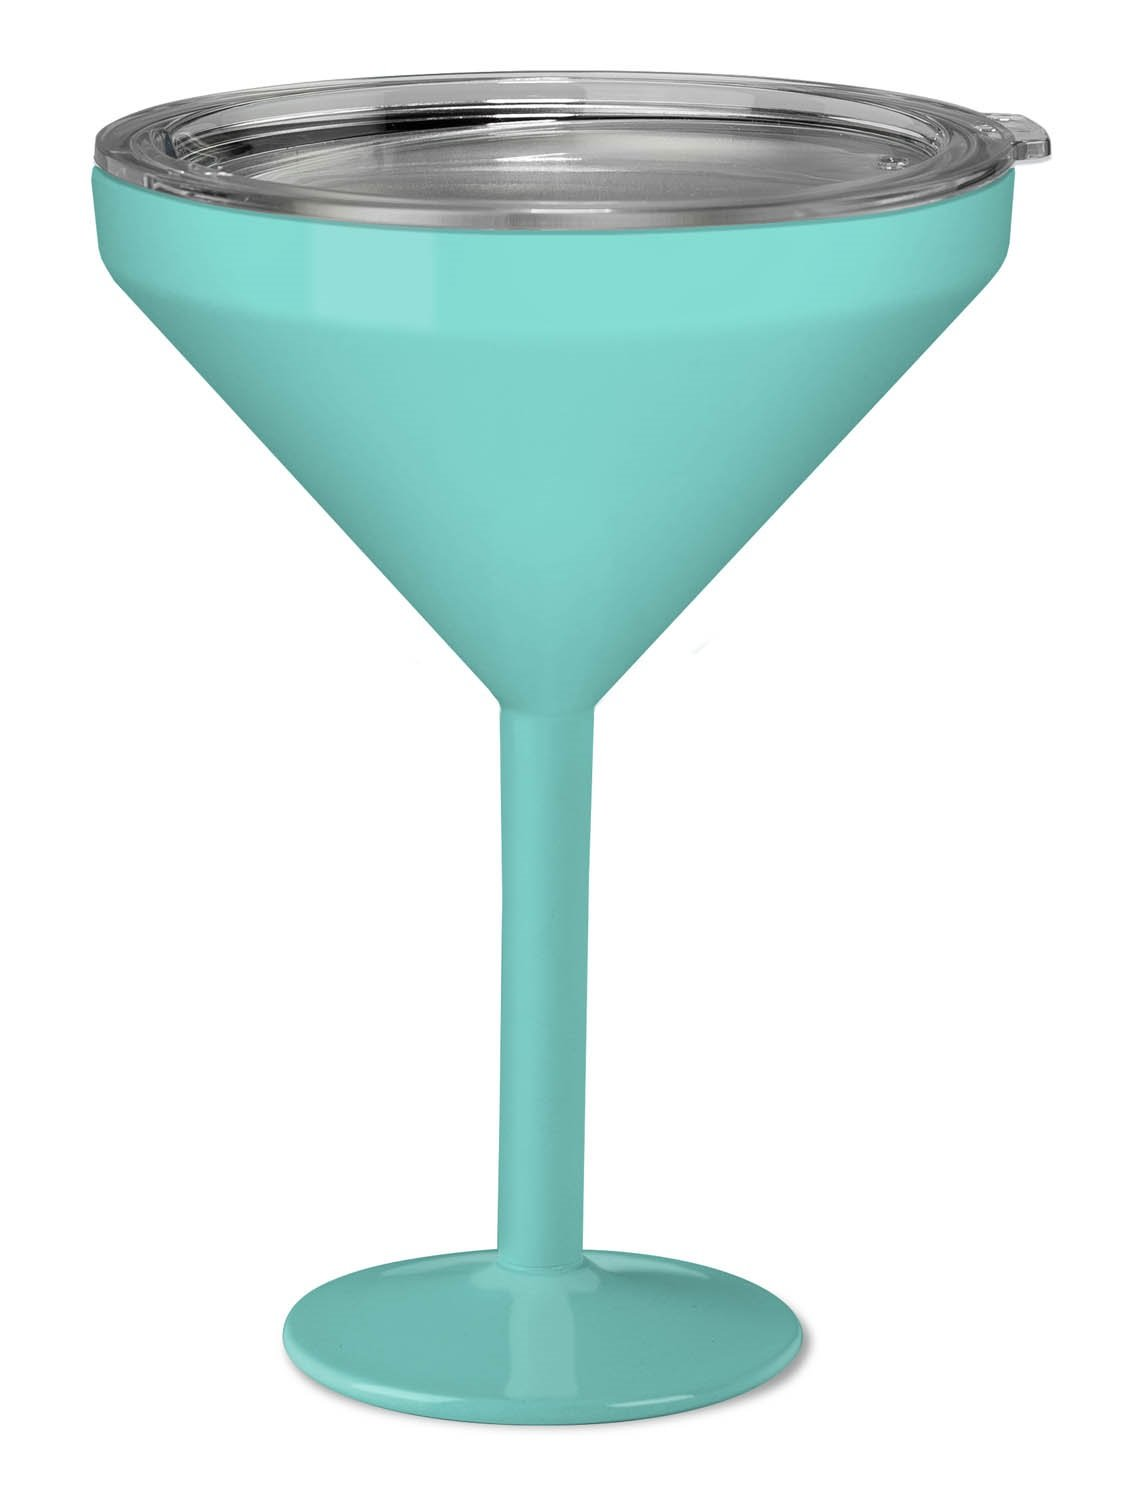 True North Insulated Martini Glass (Beach Seafoam)